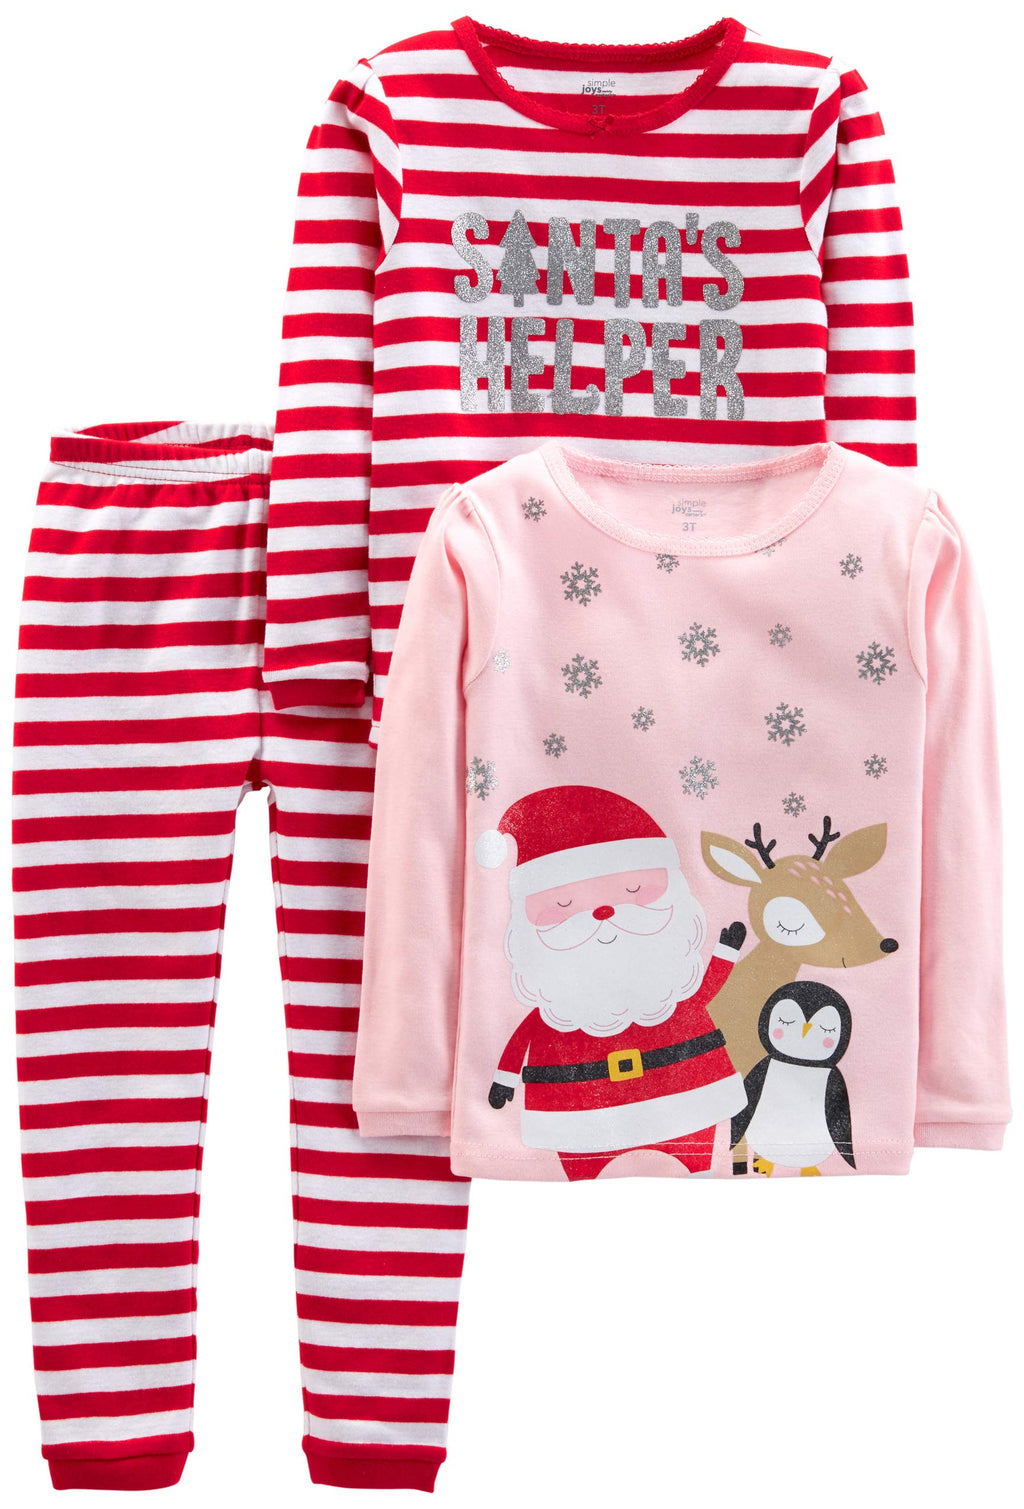 Simple Joys by Carter's Baby, Little Kid, and Toddler Girls' 3-Piece Snug-Fit Cotton Christmas Pajama Set